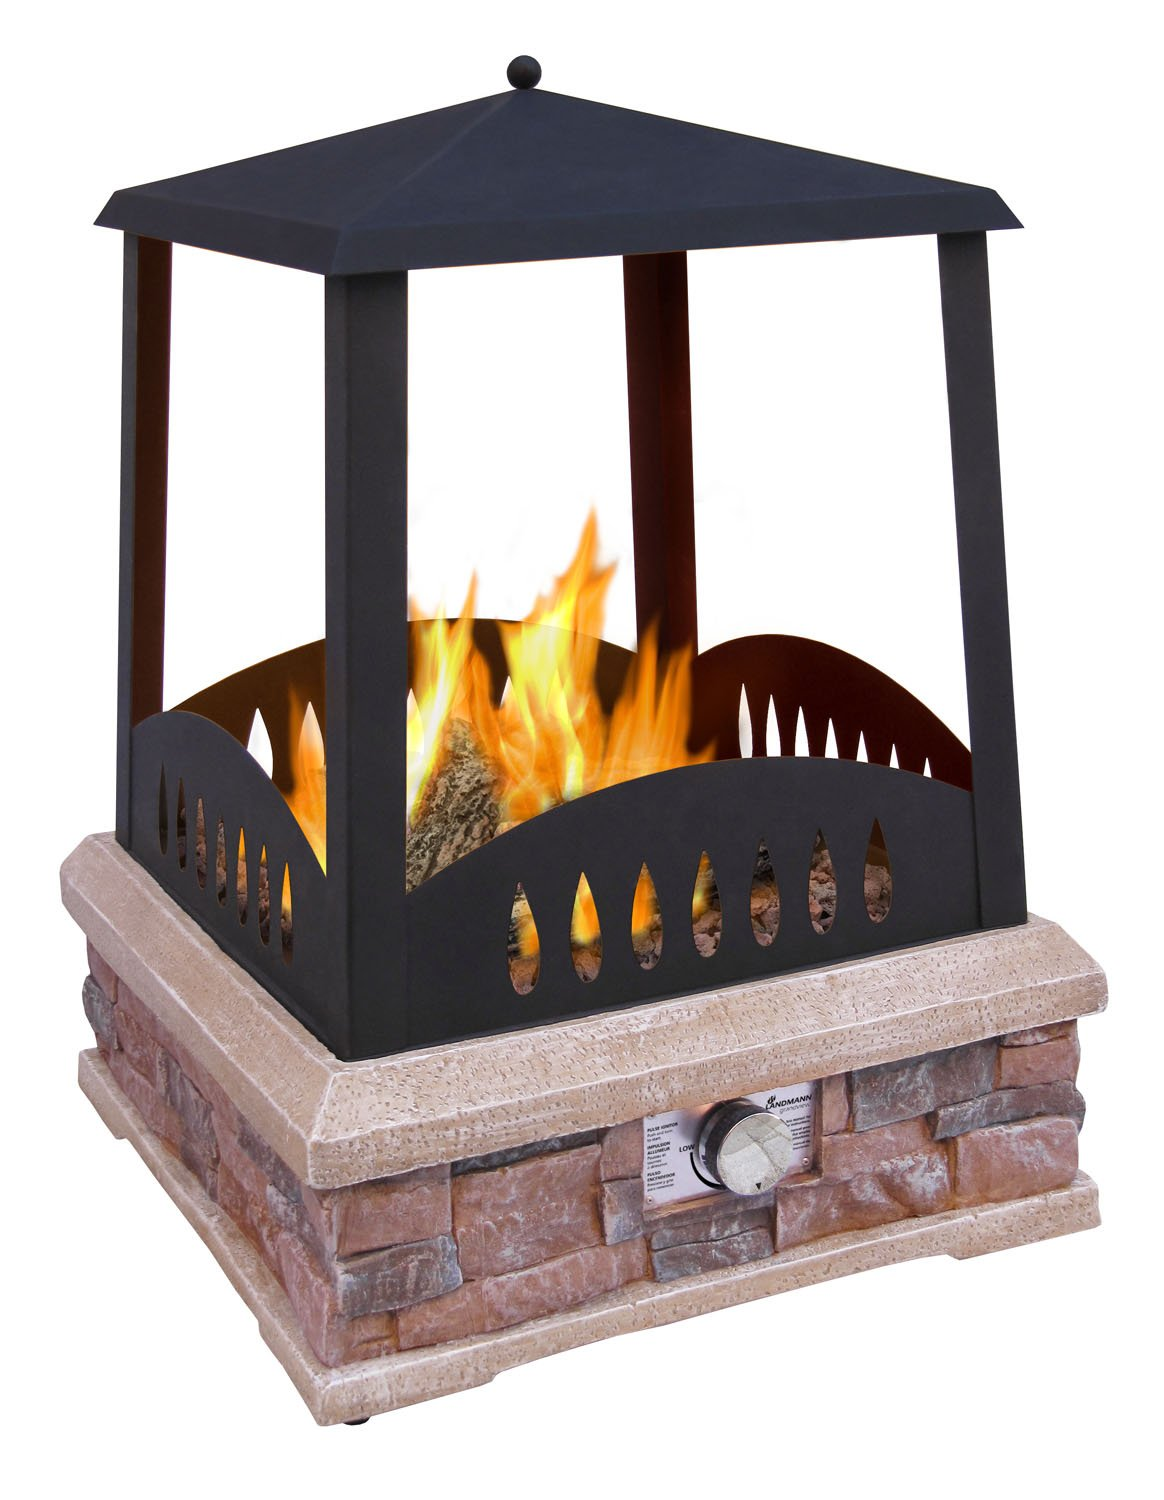 Amazon.com : Landmann 22812 Grandview Outdoor Gas Fireplace : Propane Fire Pit : Garden & Outdoor